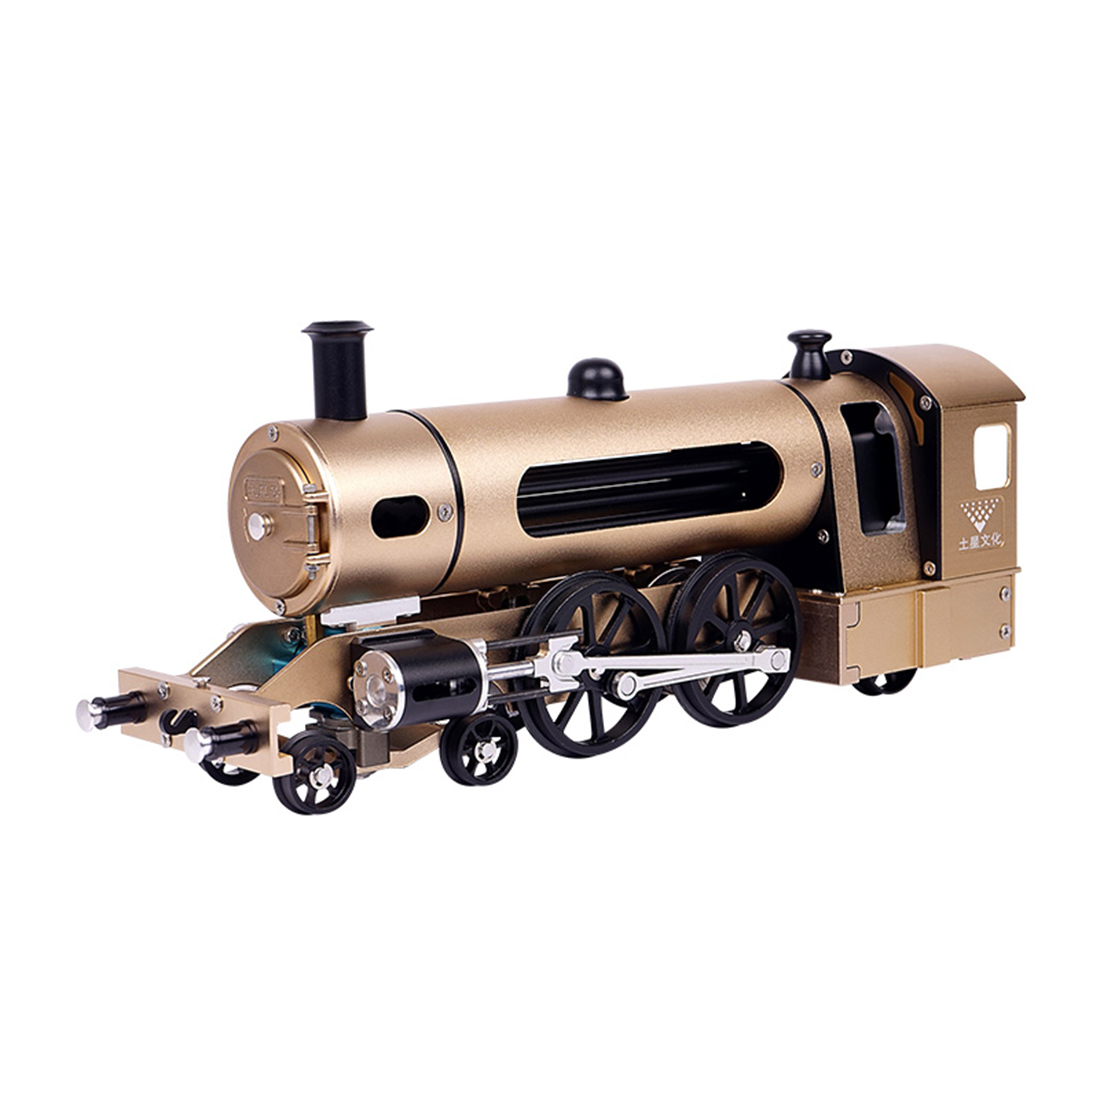 Hot All Metal Puzzle Electric Steam Train High Challenge Assembled Model Toy Creative Gifts Model Kits Puzzle Toys For Adult Boy